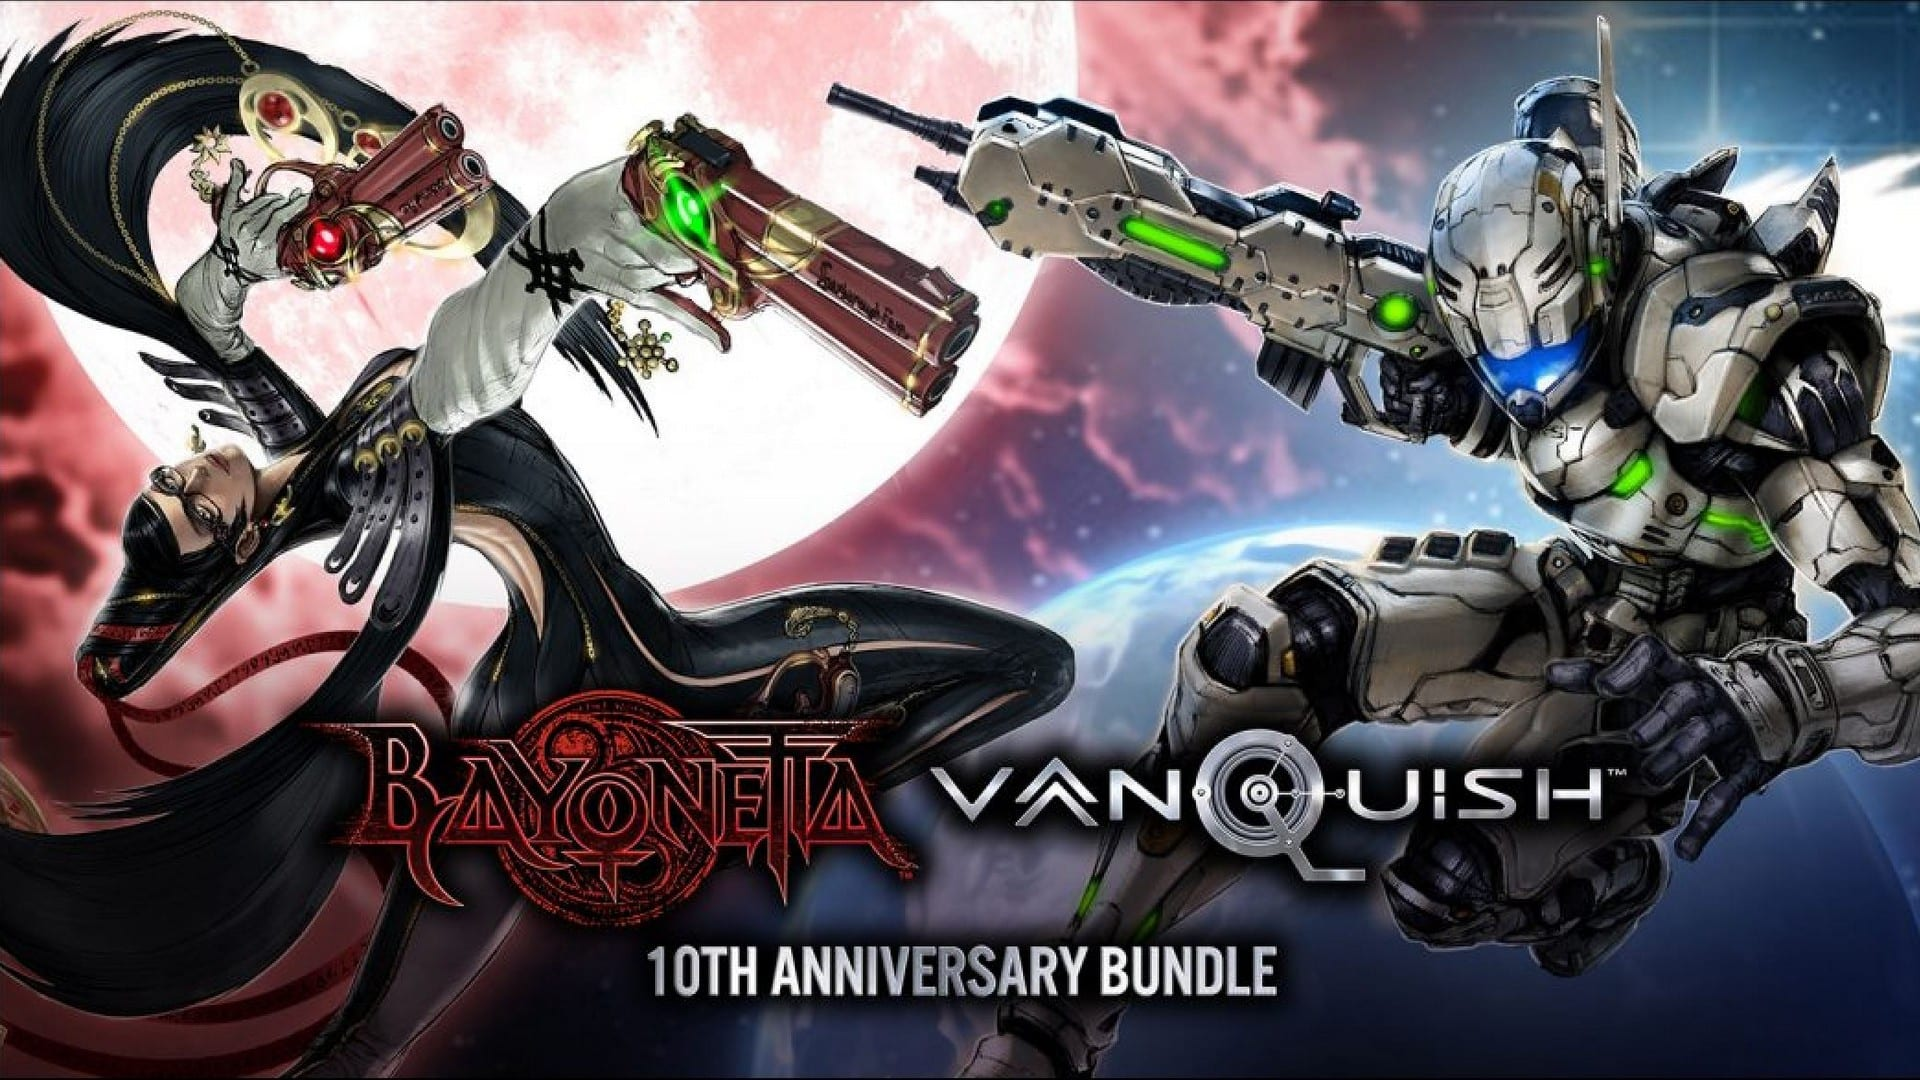 Bayonetta & Vanquish Are Ready To Lock And Load On Playstation 4 & Xbox One Now